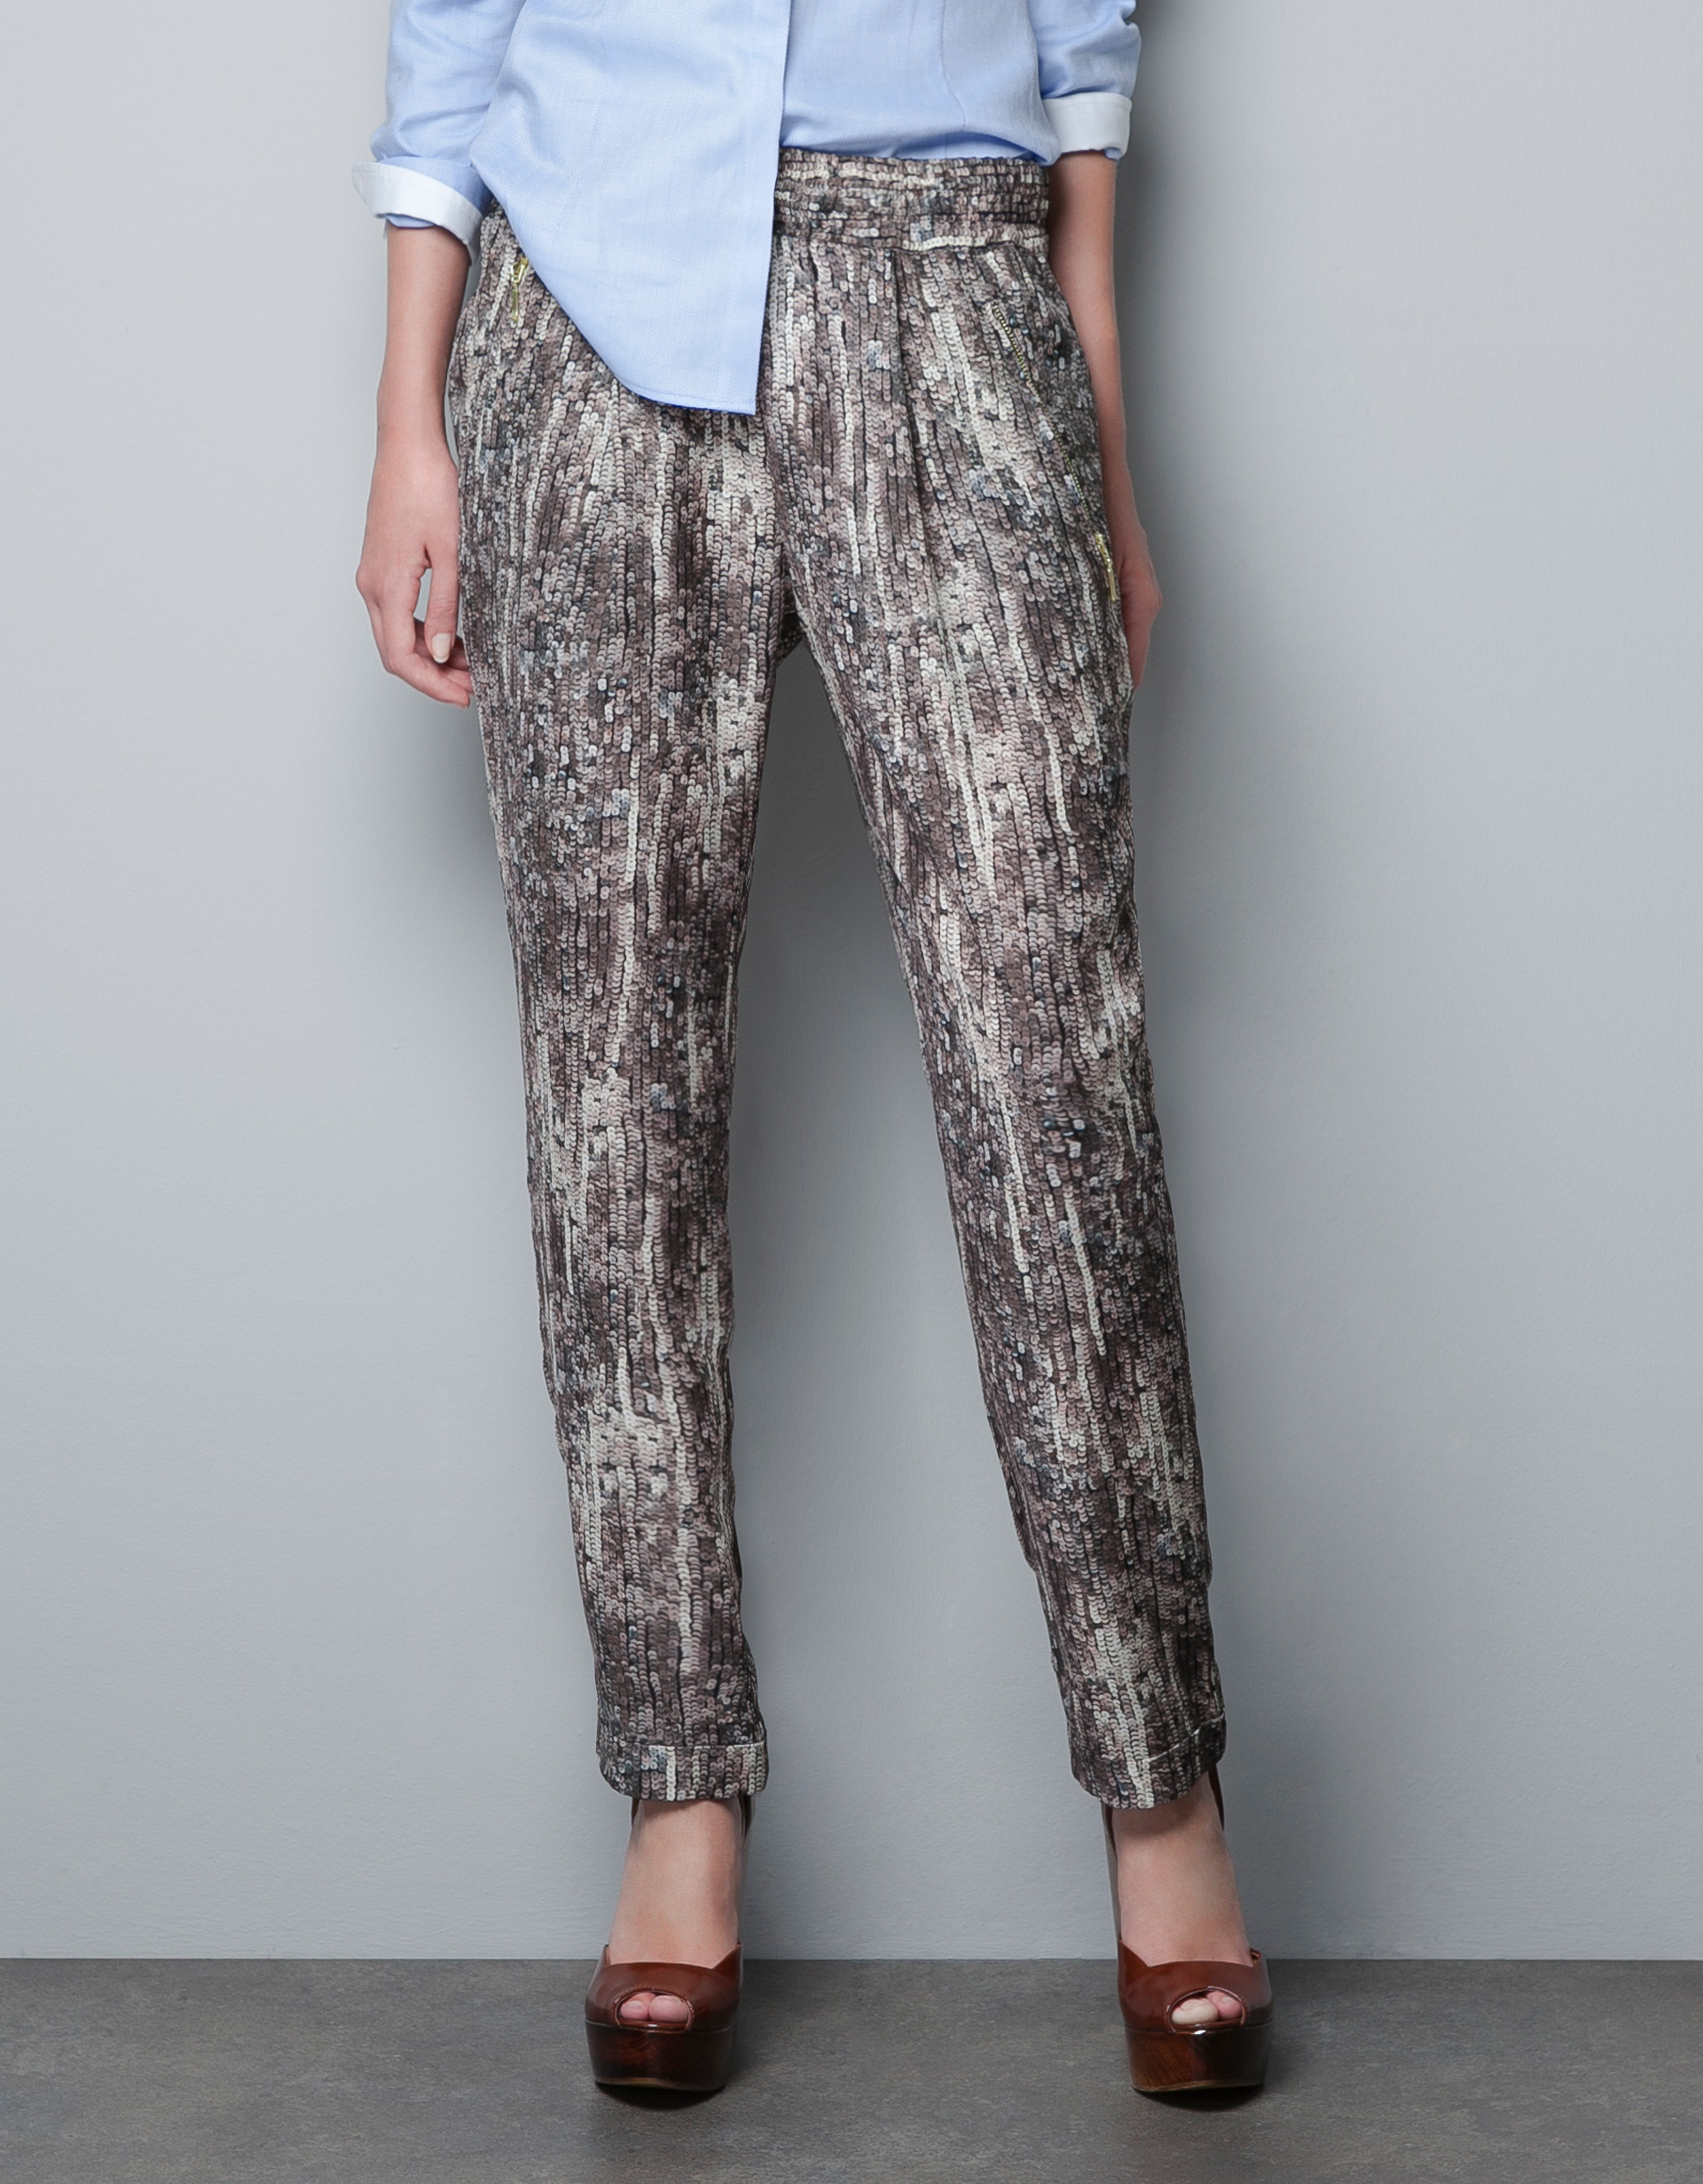 Sequin Print Pants by Zara